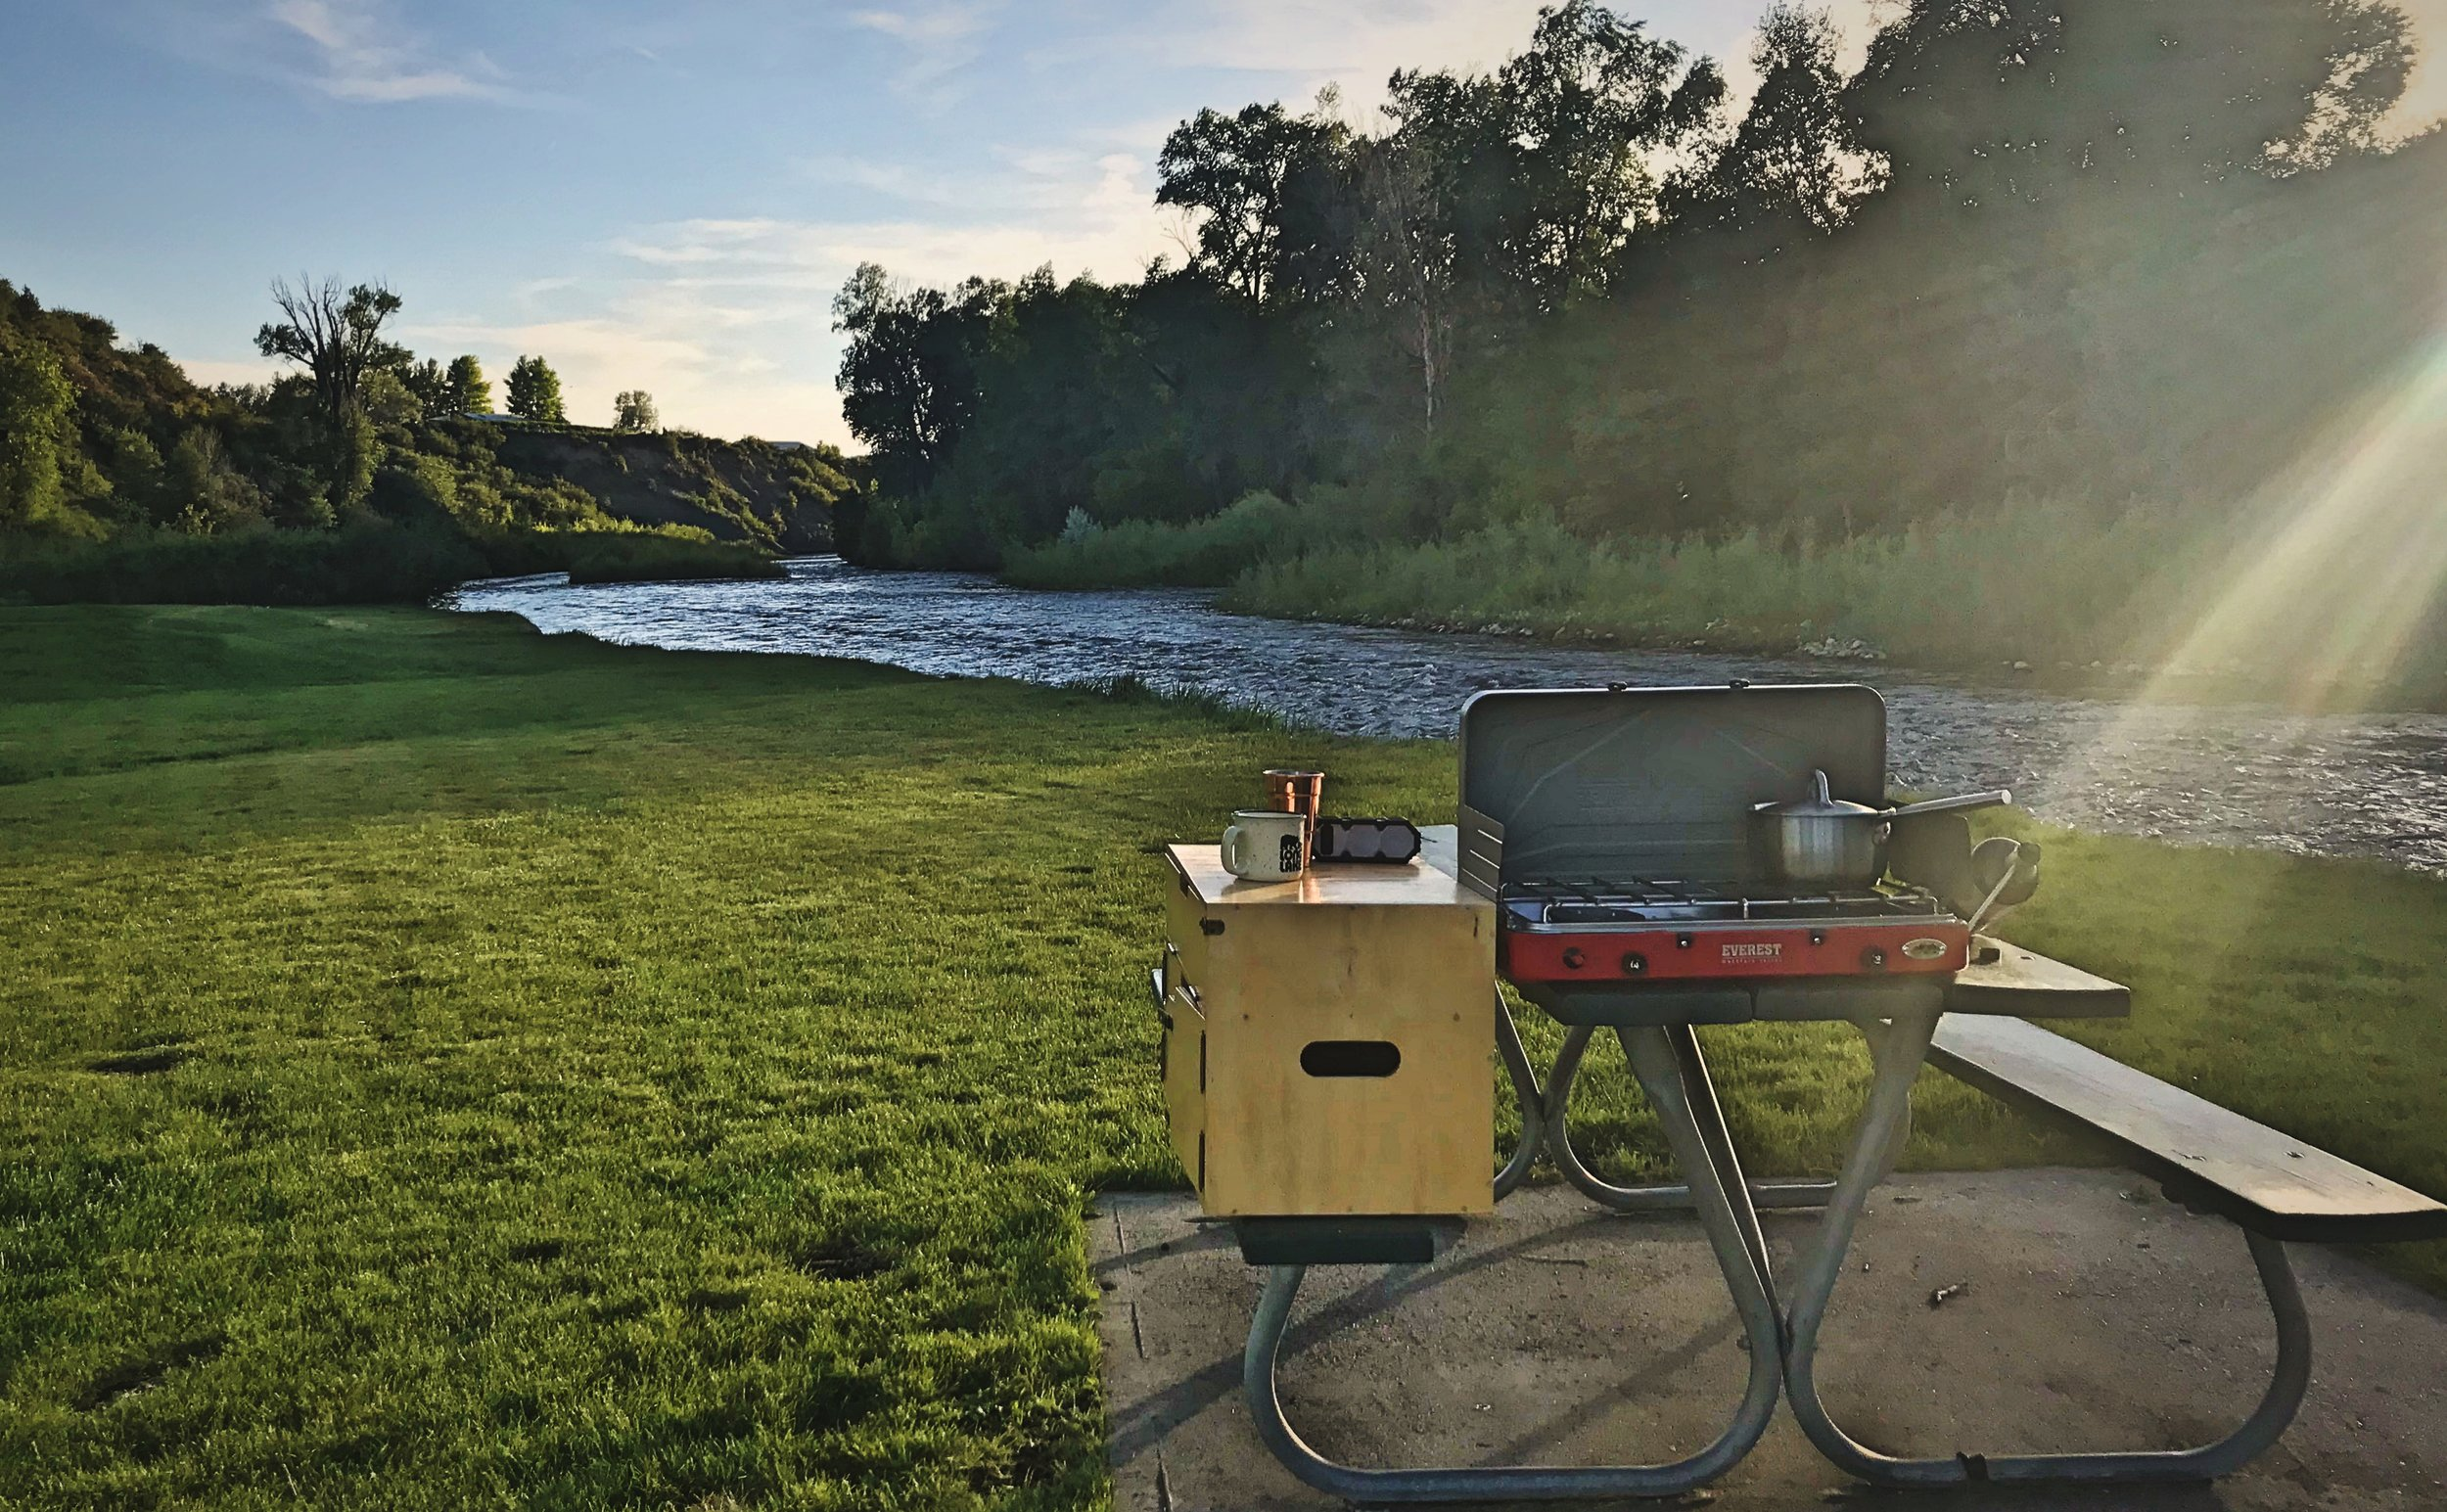 Cooking outside with our chuck box is one of our favorite things to do on warm summer evenings. This spot in Meeker, Colorado was especially perfect. Cooking with our chuck box outdoors it the only time we use 2-lb propane cylinders.